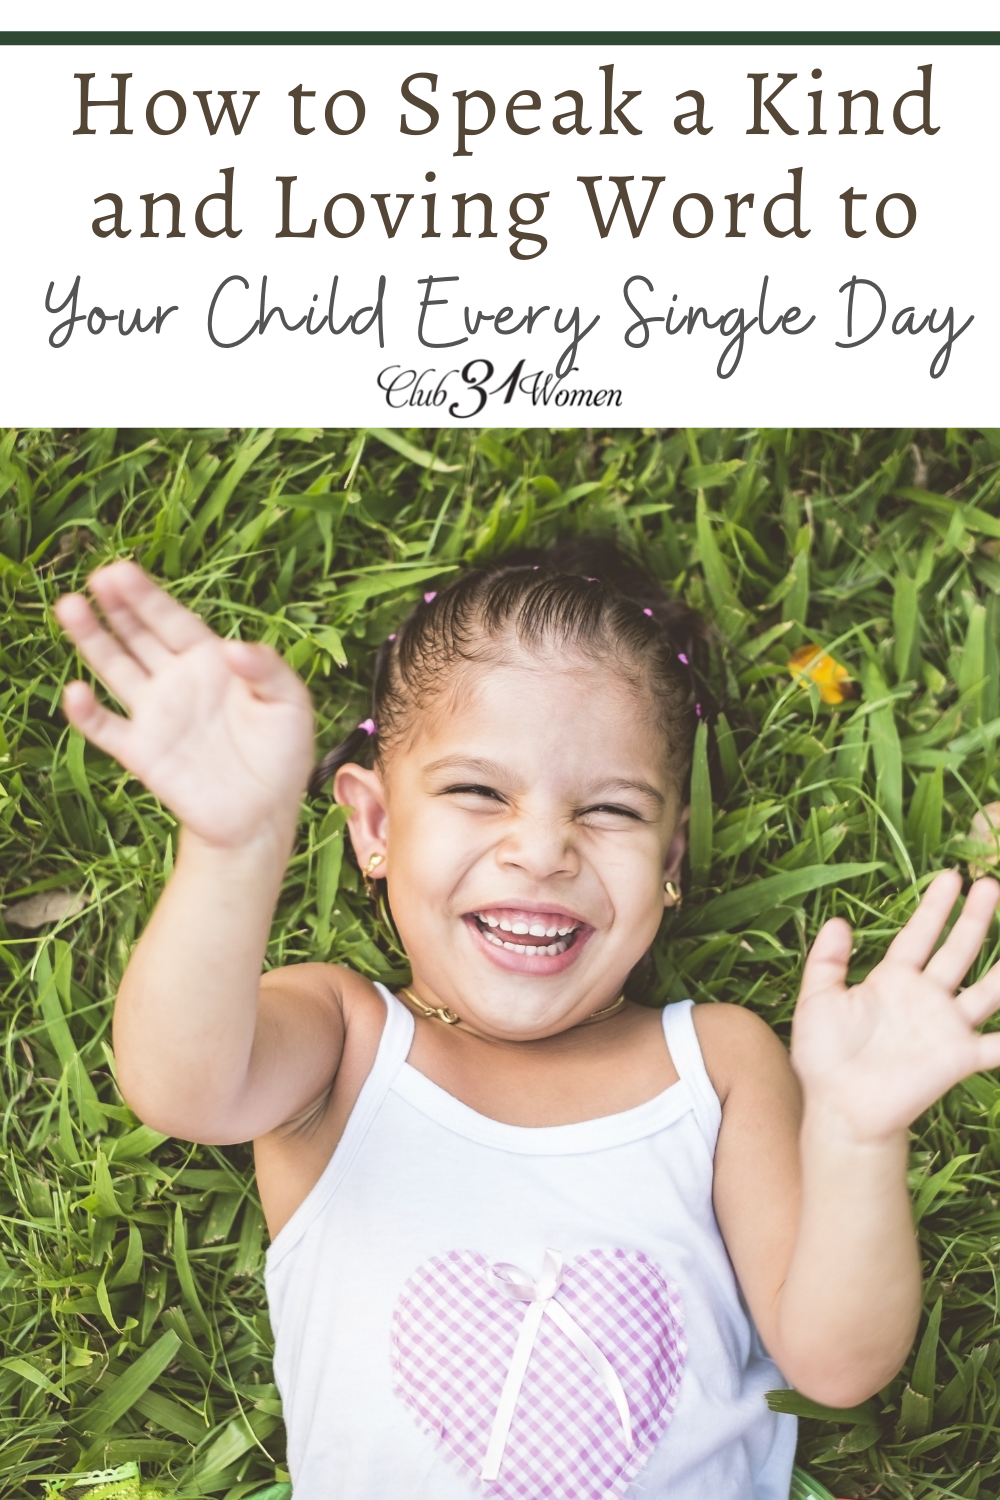 Don't wait to speak that kind and beautiful word to your child each day. Speak truth into their hearts and build their confidence in Christ. via @Club31Women